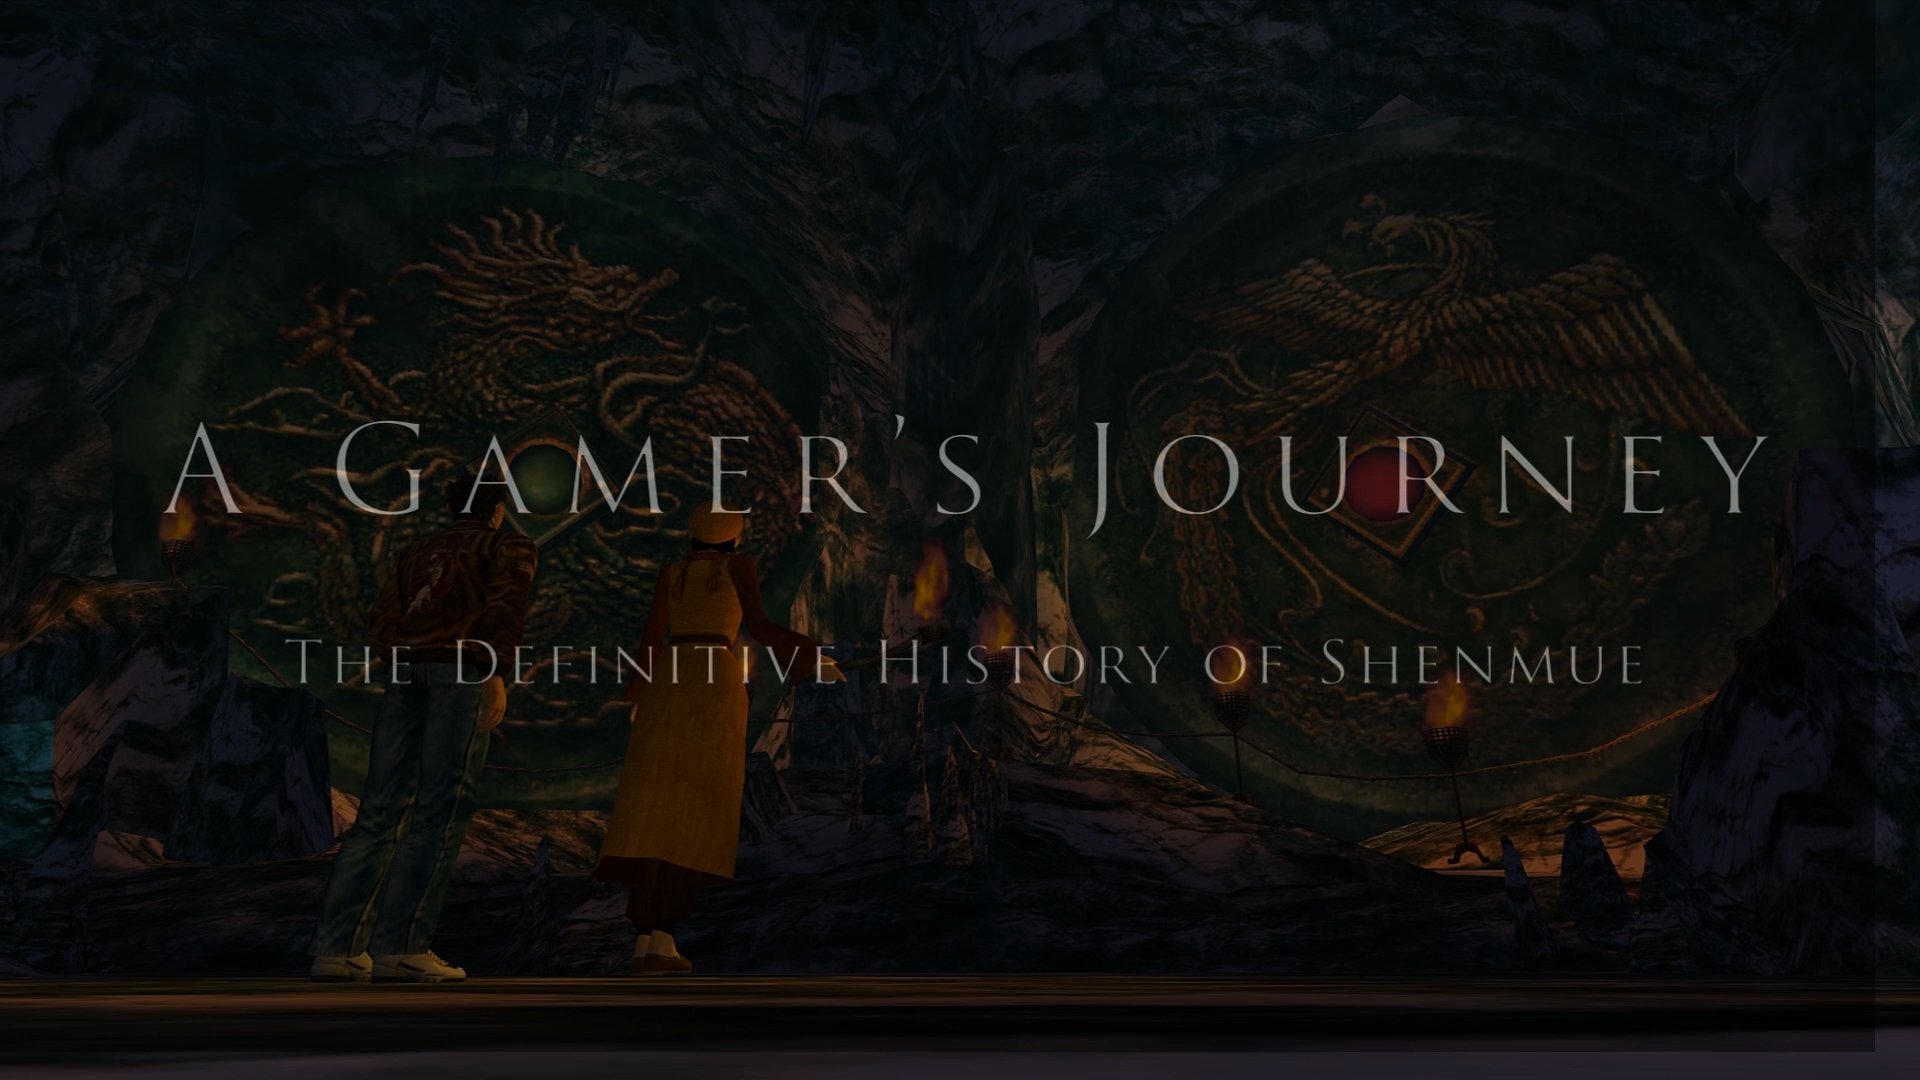 A Gamer's Journey The Definitive History of Shenmue